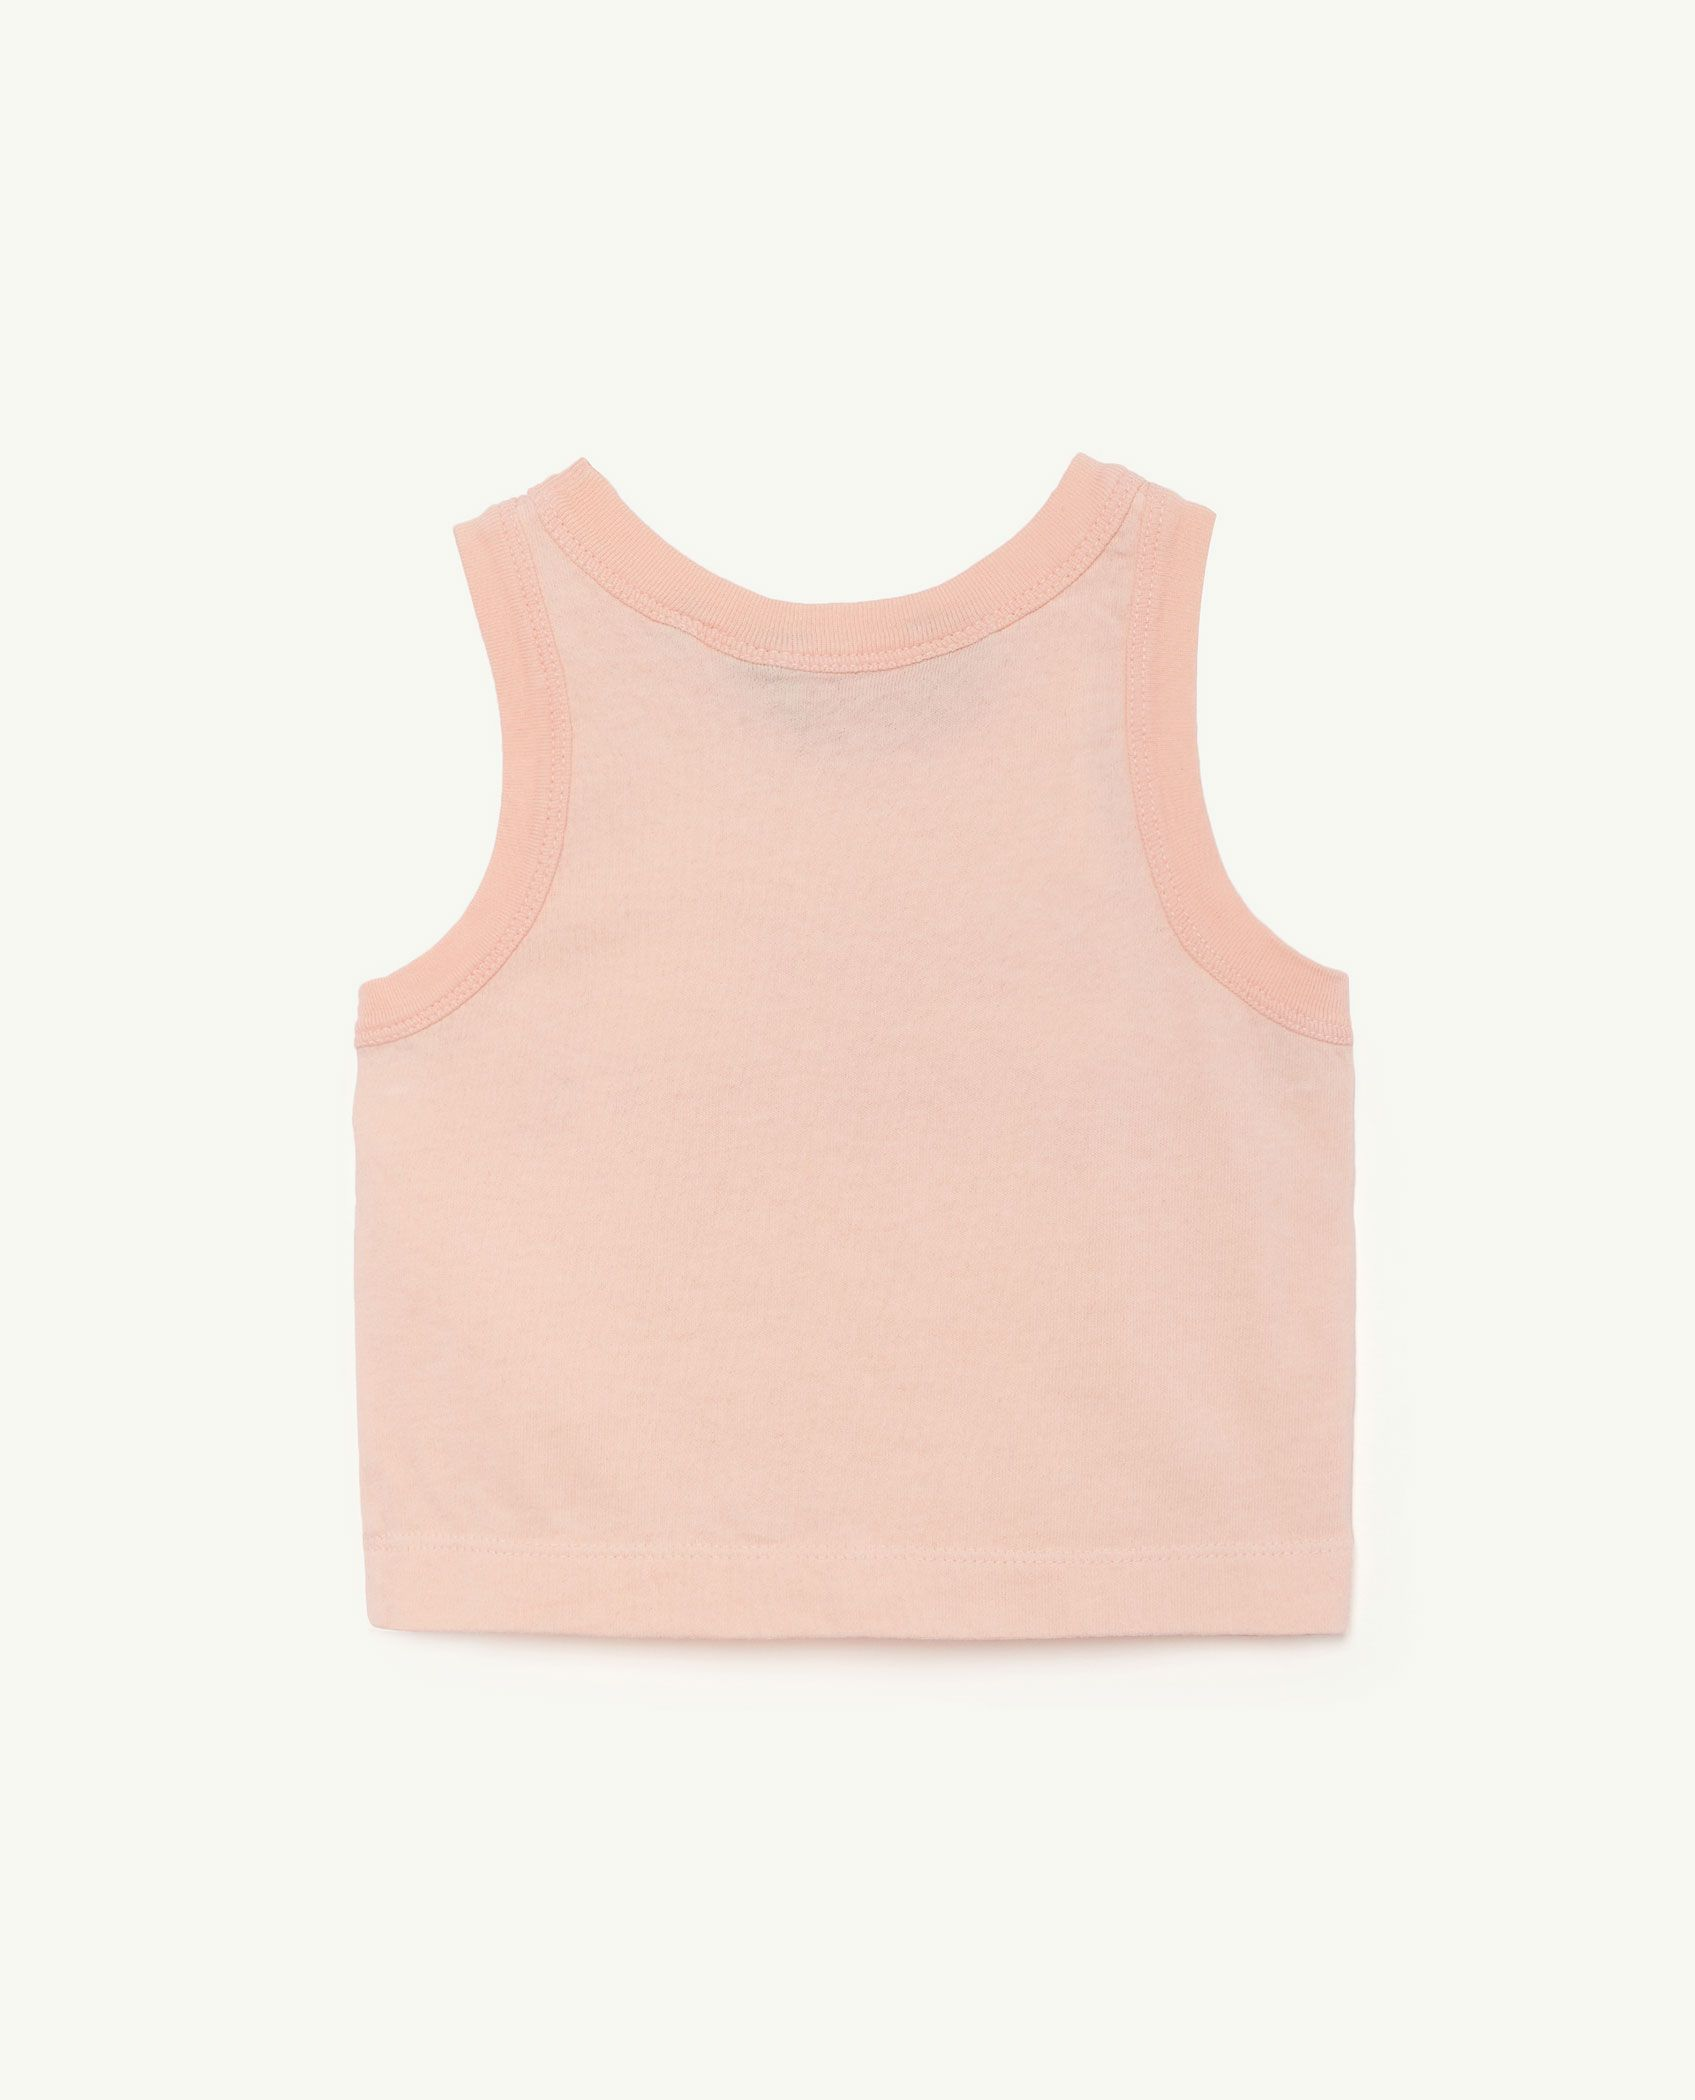 Buon Appetito Frog Tank Top img-2